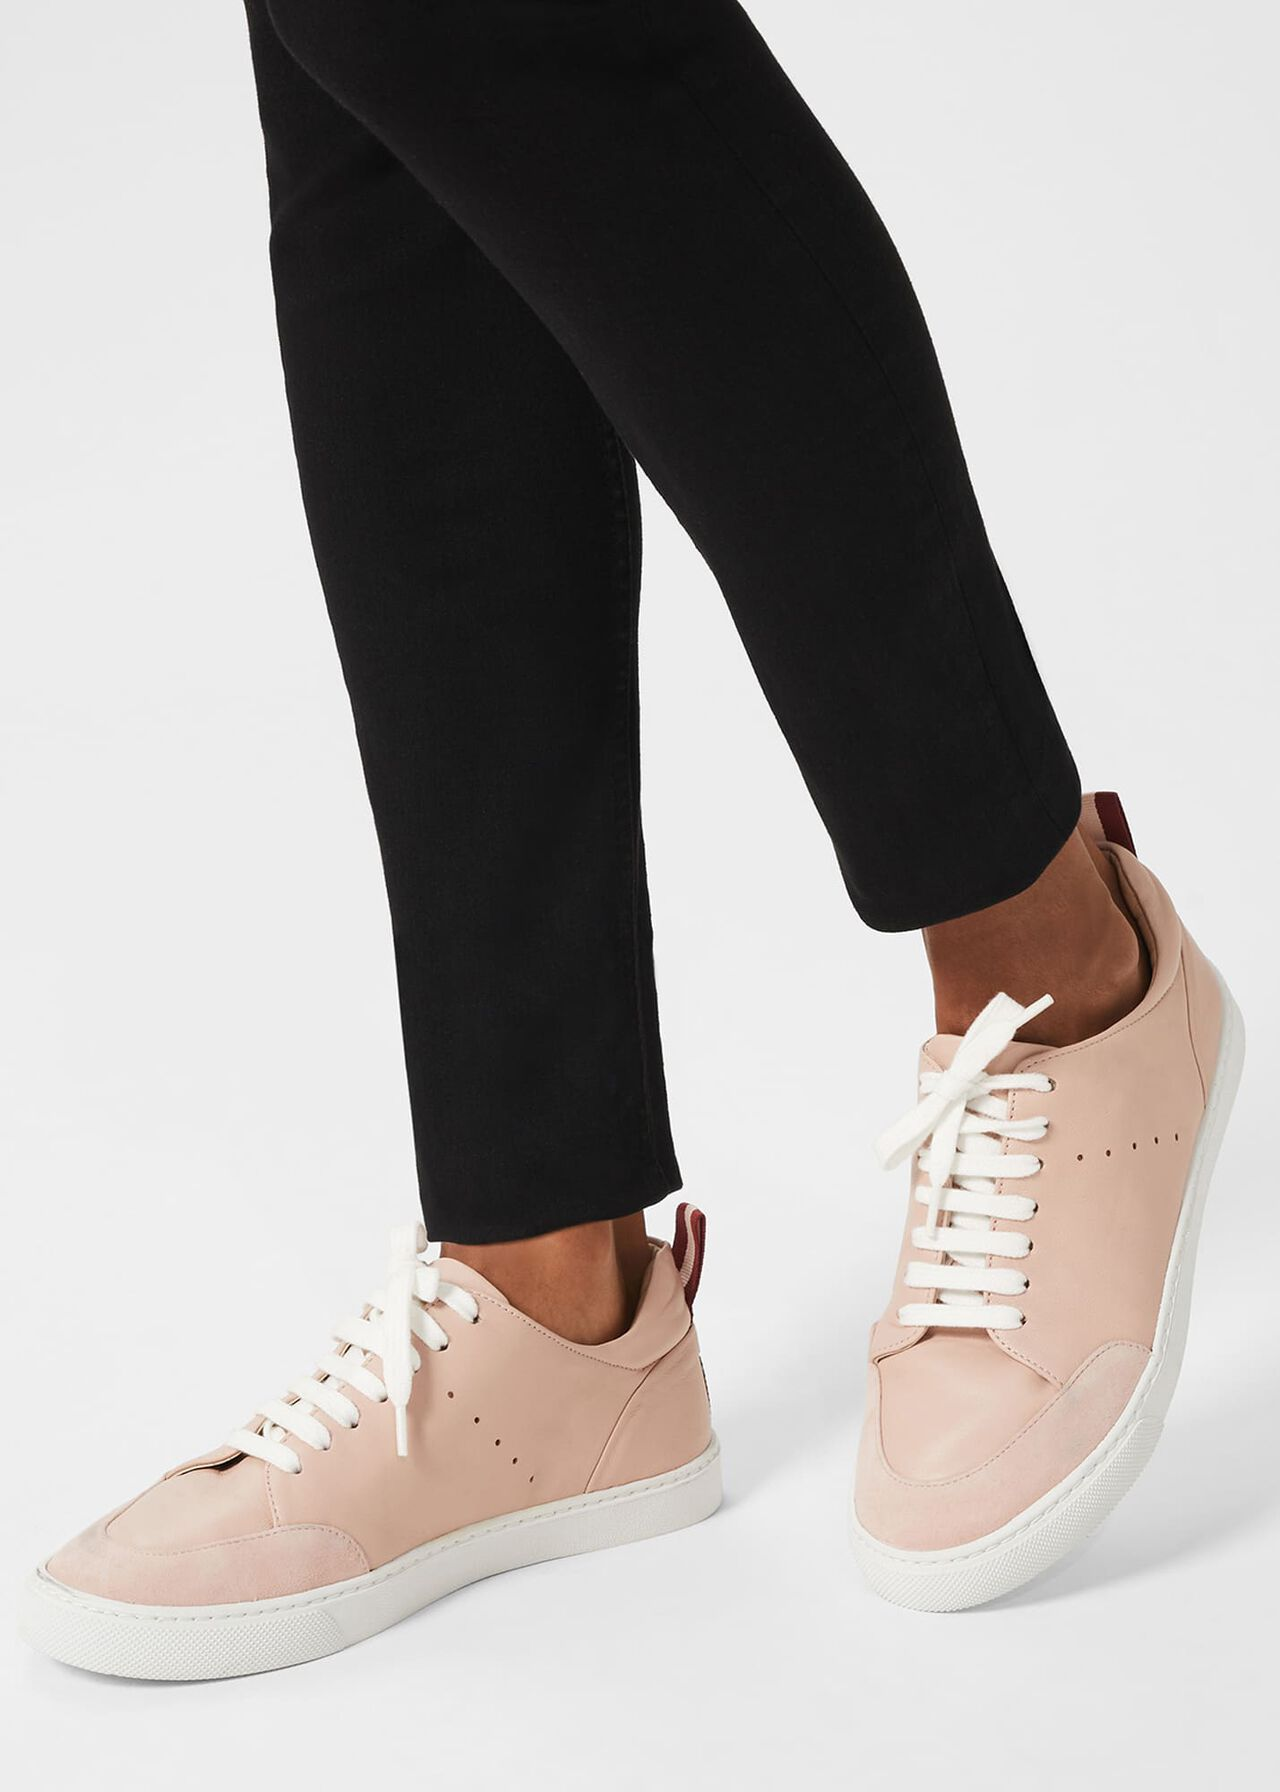 Liberty Leather Trainers, Pale Pink, hi-res